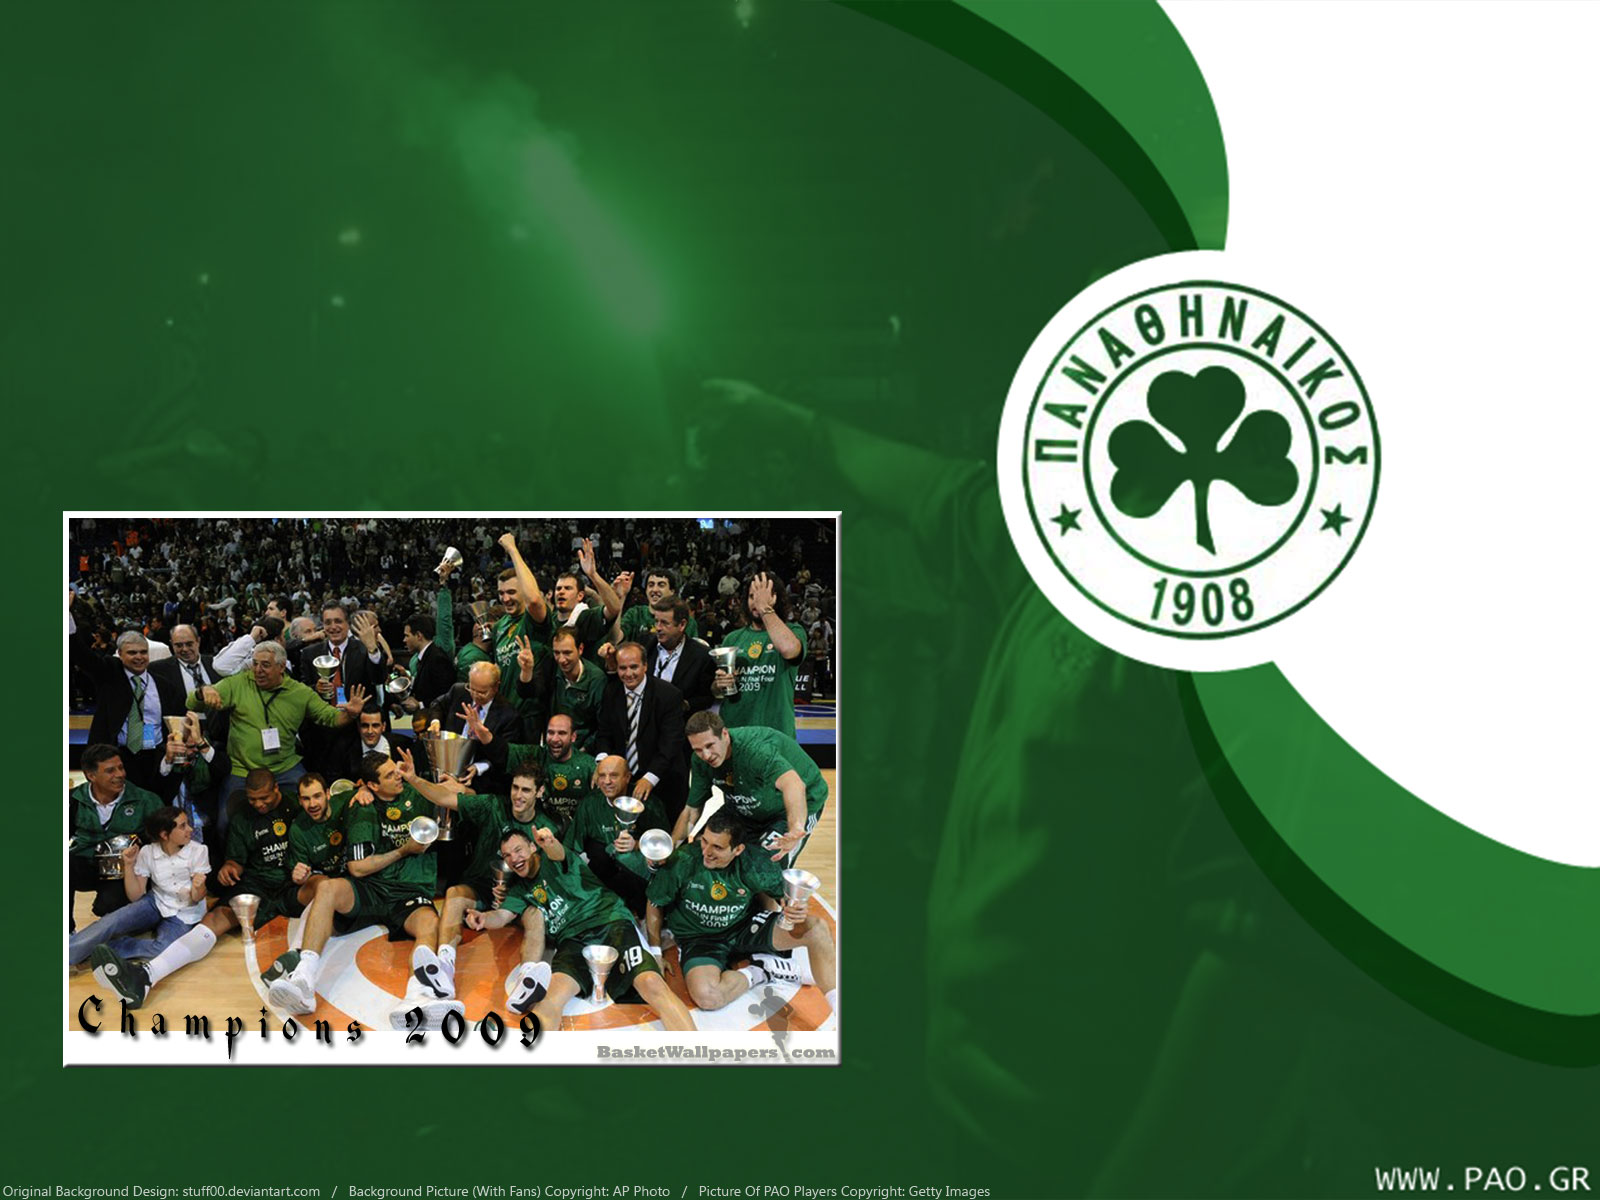 Here's wallpaper of 2009 Euroleague champions - Panathinaikos :) i meant to